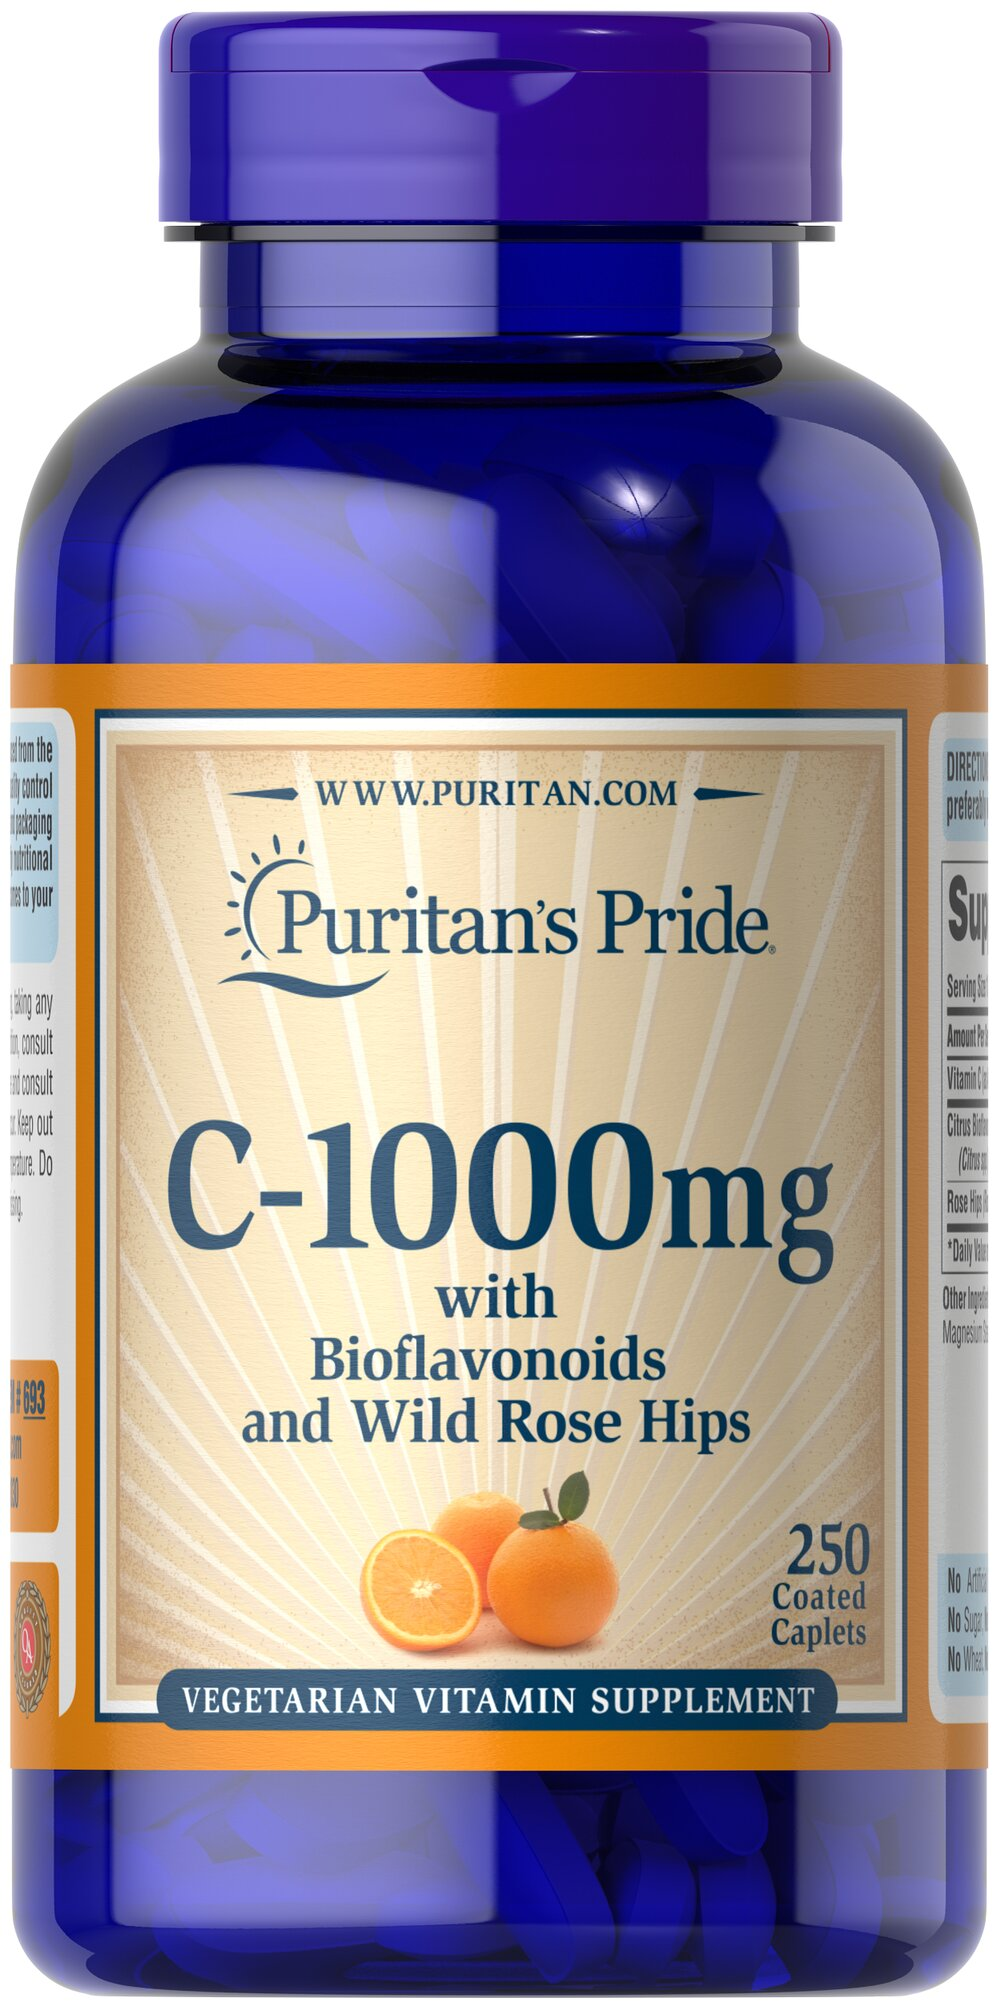 Vitamin C-1000 mg with Bioflavonoids & Rose Hips <p>Vitamin C  is essential to many functions in the body and is one of the leading vitamins for immune support and helps fight cell-damaging free radicals.**  Our product also includes Rose Hips, which help the body absorb and utilize Vitamin C.**</p><p>Offers superior antioxidant support.**</p><p>Supports healthy immune function and promotes well-being.**</p> 250 Caplets 1000 mg $21.99